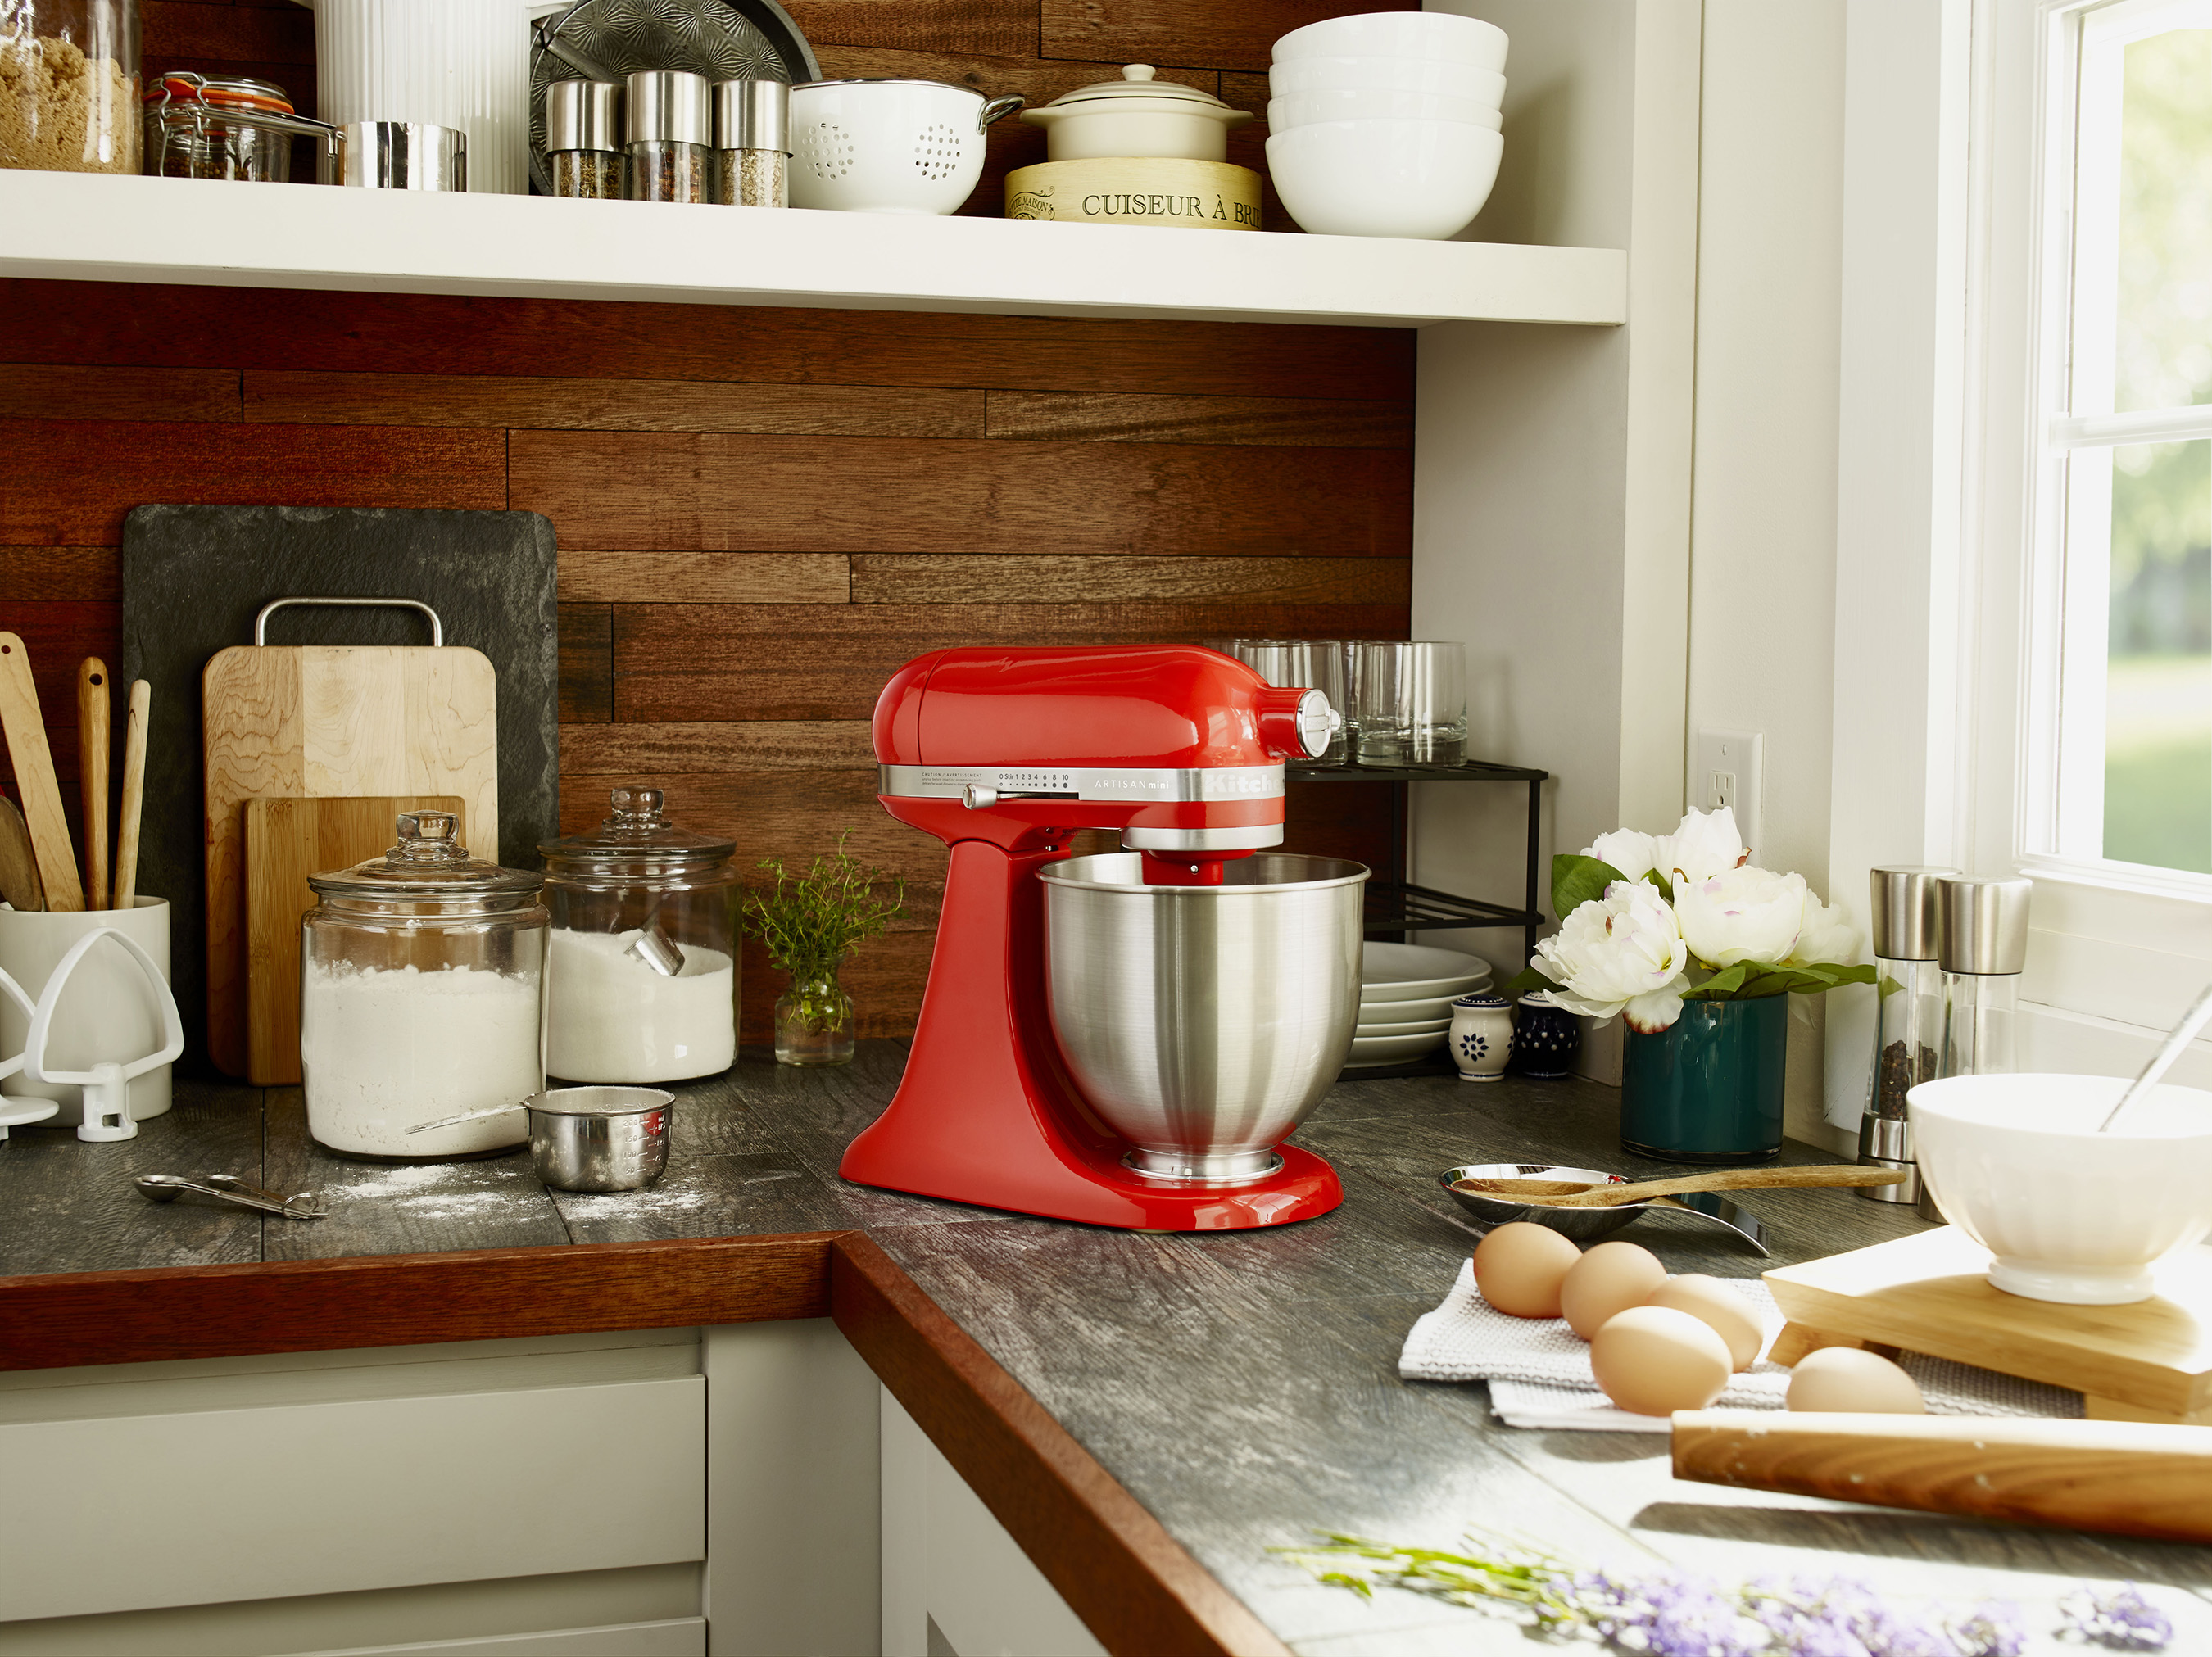 Offering the same power and performance as the brand's ClassicTM Stand Mixer, the Artisan Mini mixer features a 3.5-quart capacity and is 20% smaller and 25% lighter.